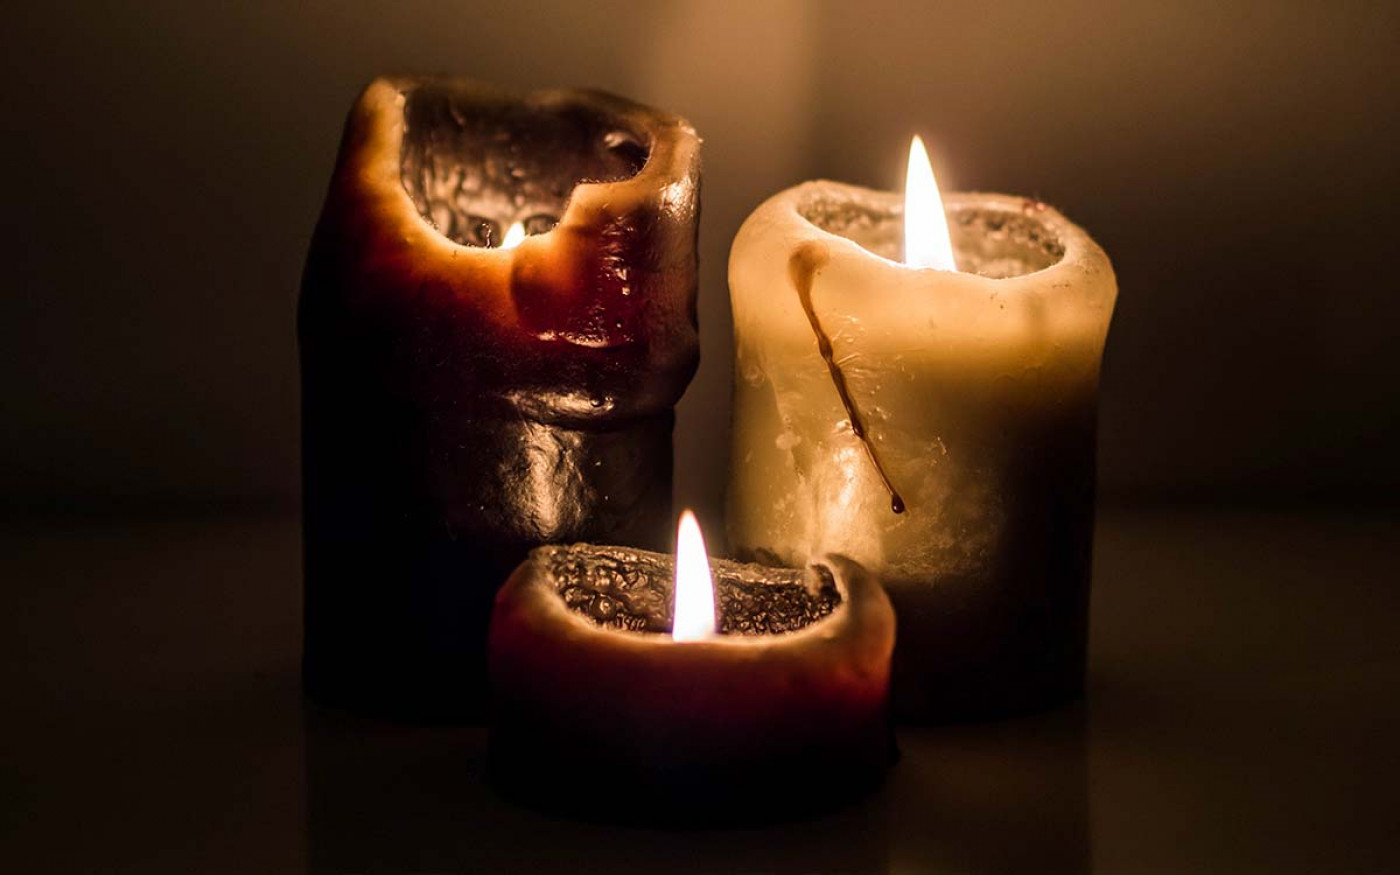 photograph of candles in low light